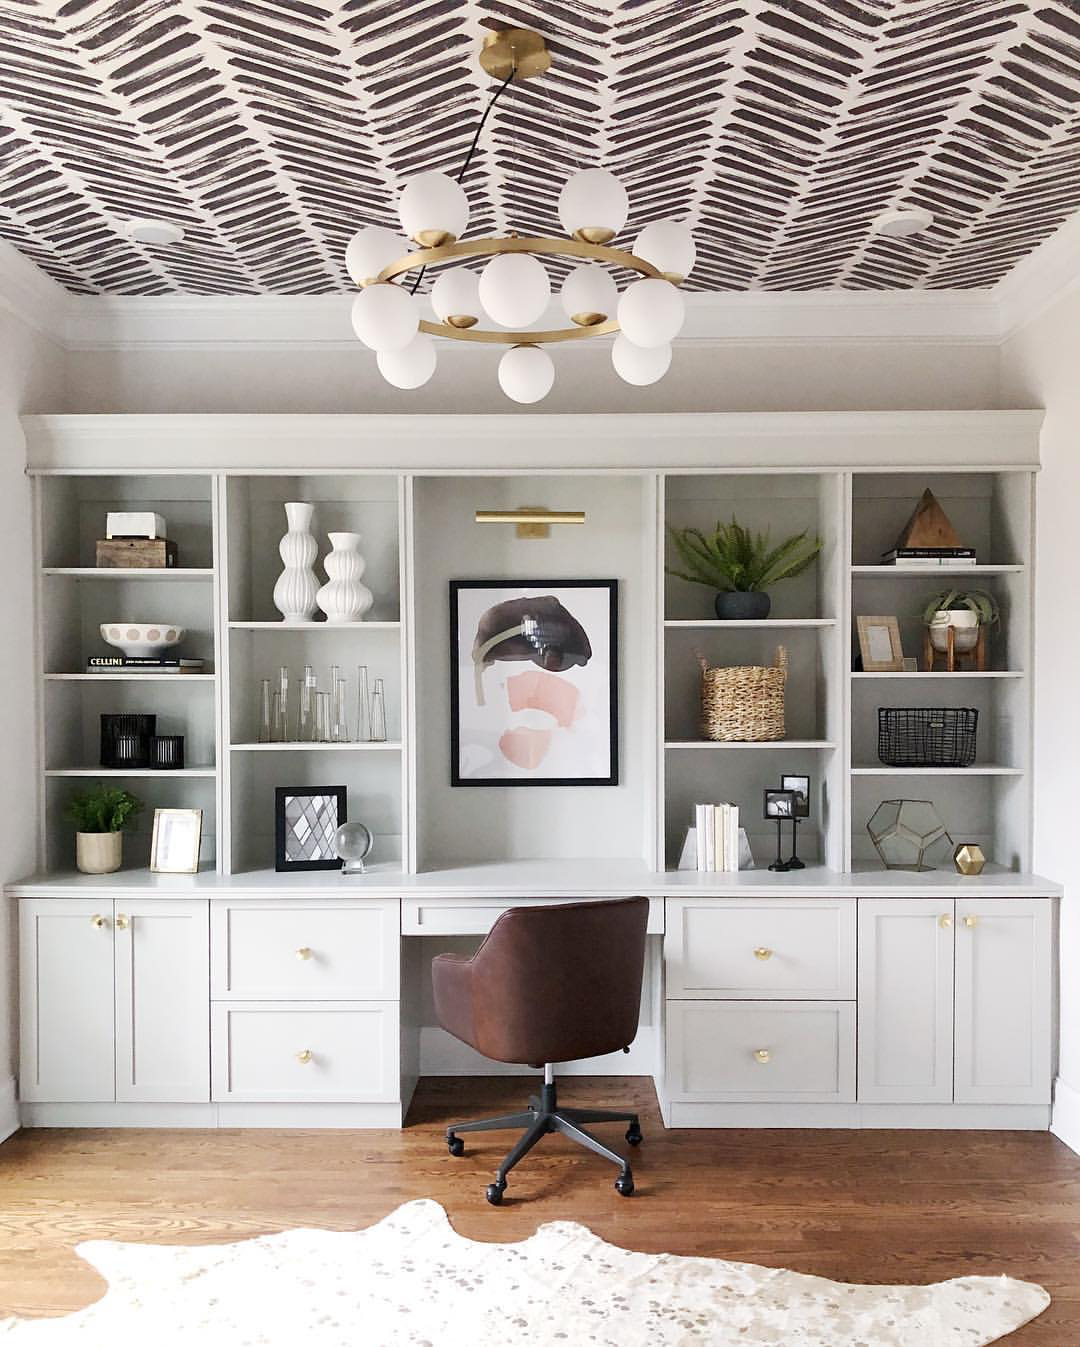 Get creative with wallpaper, like creating a unique wallpapered ceiling. Photo by  @kfddesigns